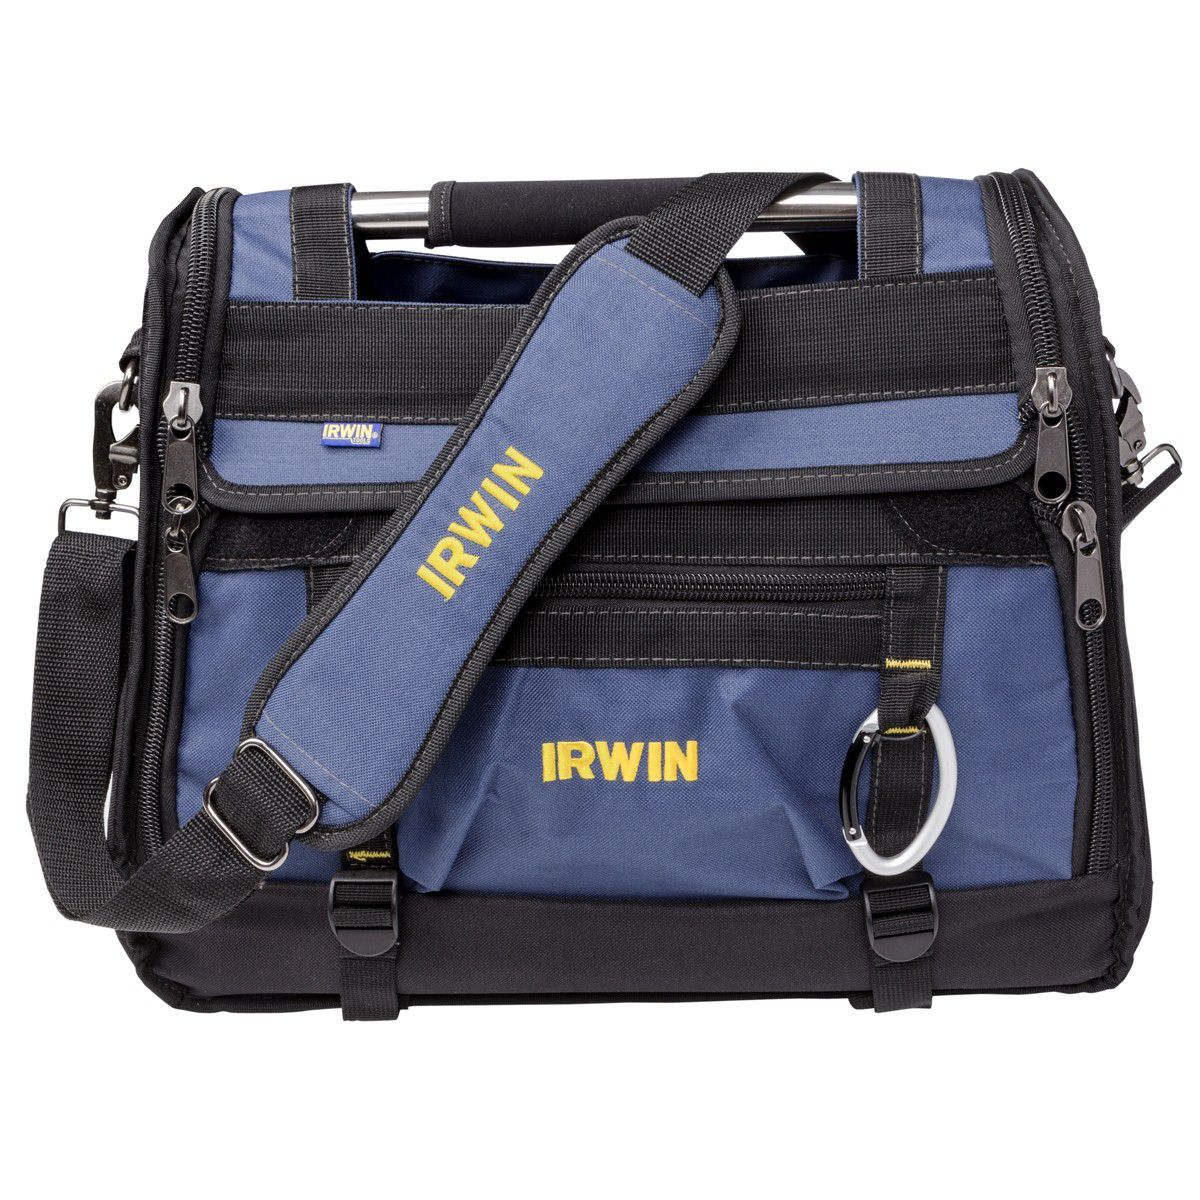 Mala P/ Ferramentas 18 Tool Center 457MM - IW14080 - Irwin